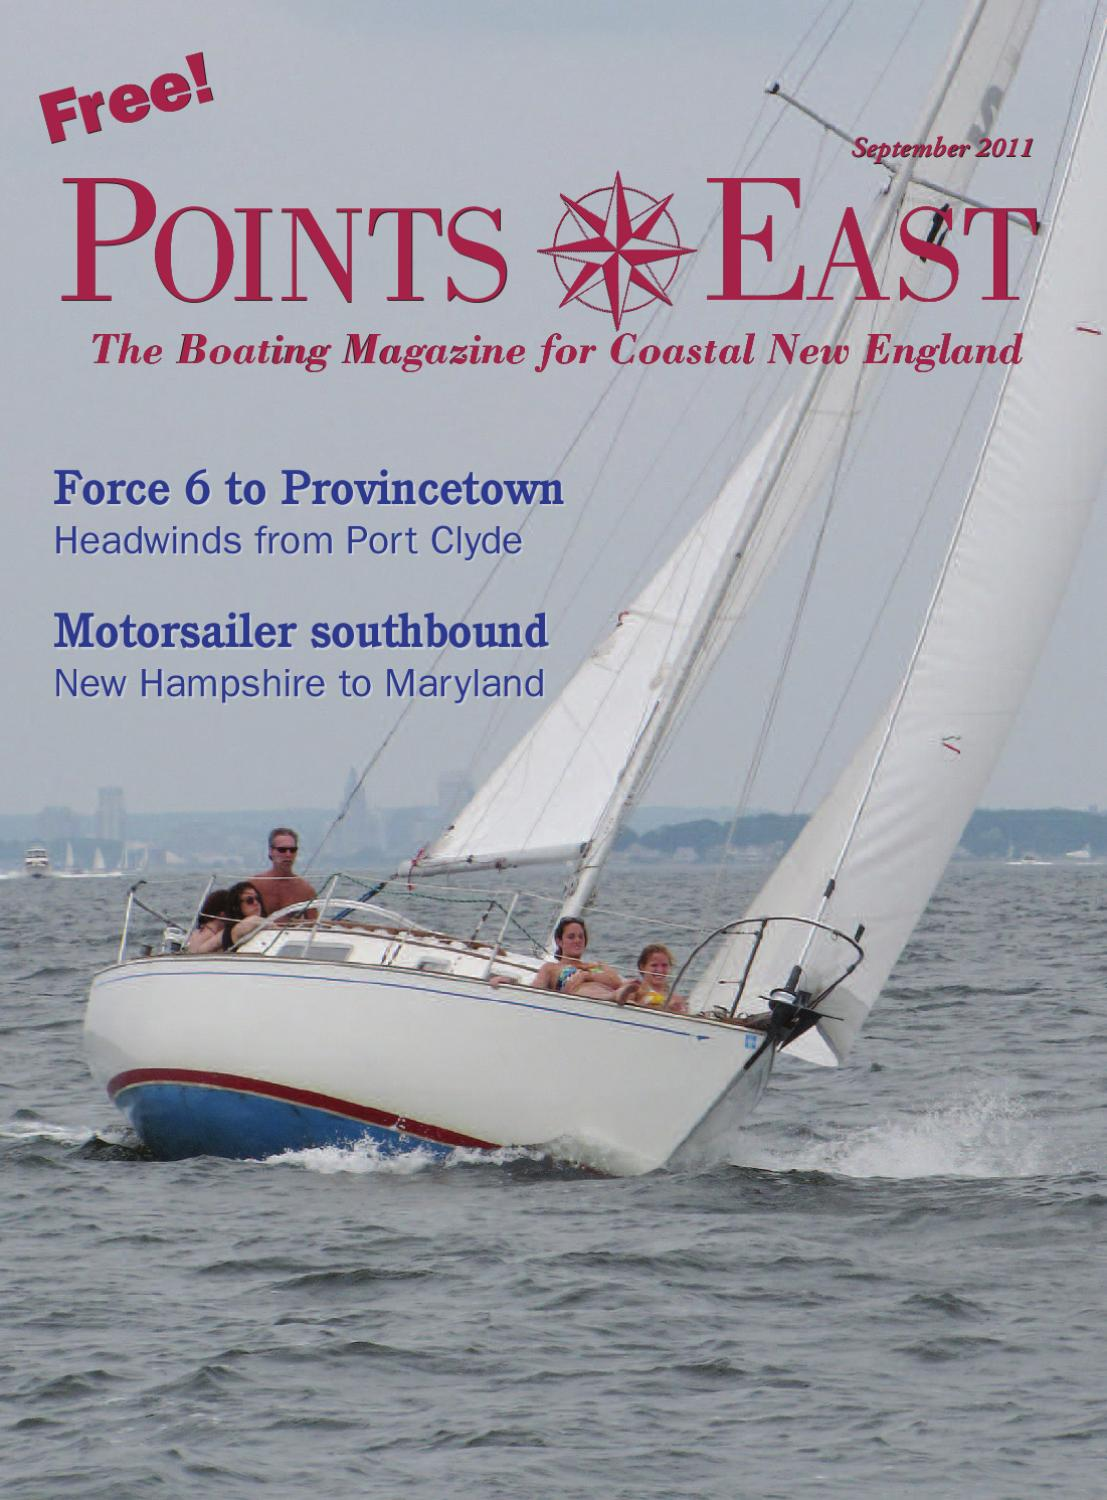 Points East Magazine, September, 2011 by Points East - issuu